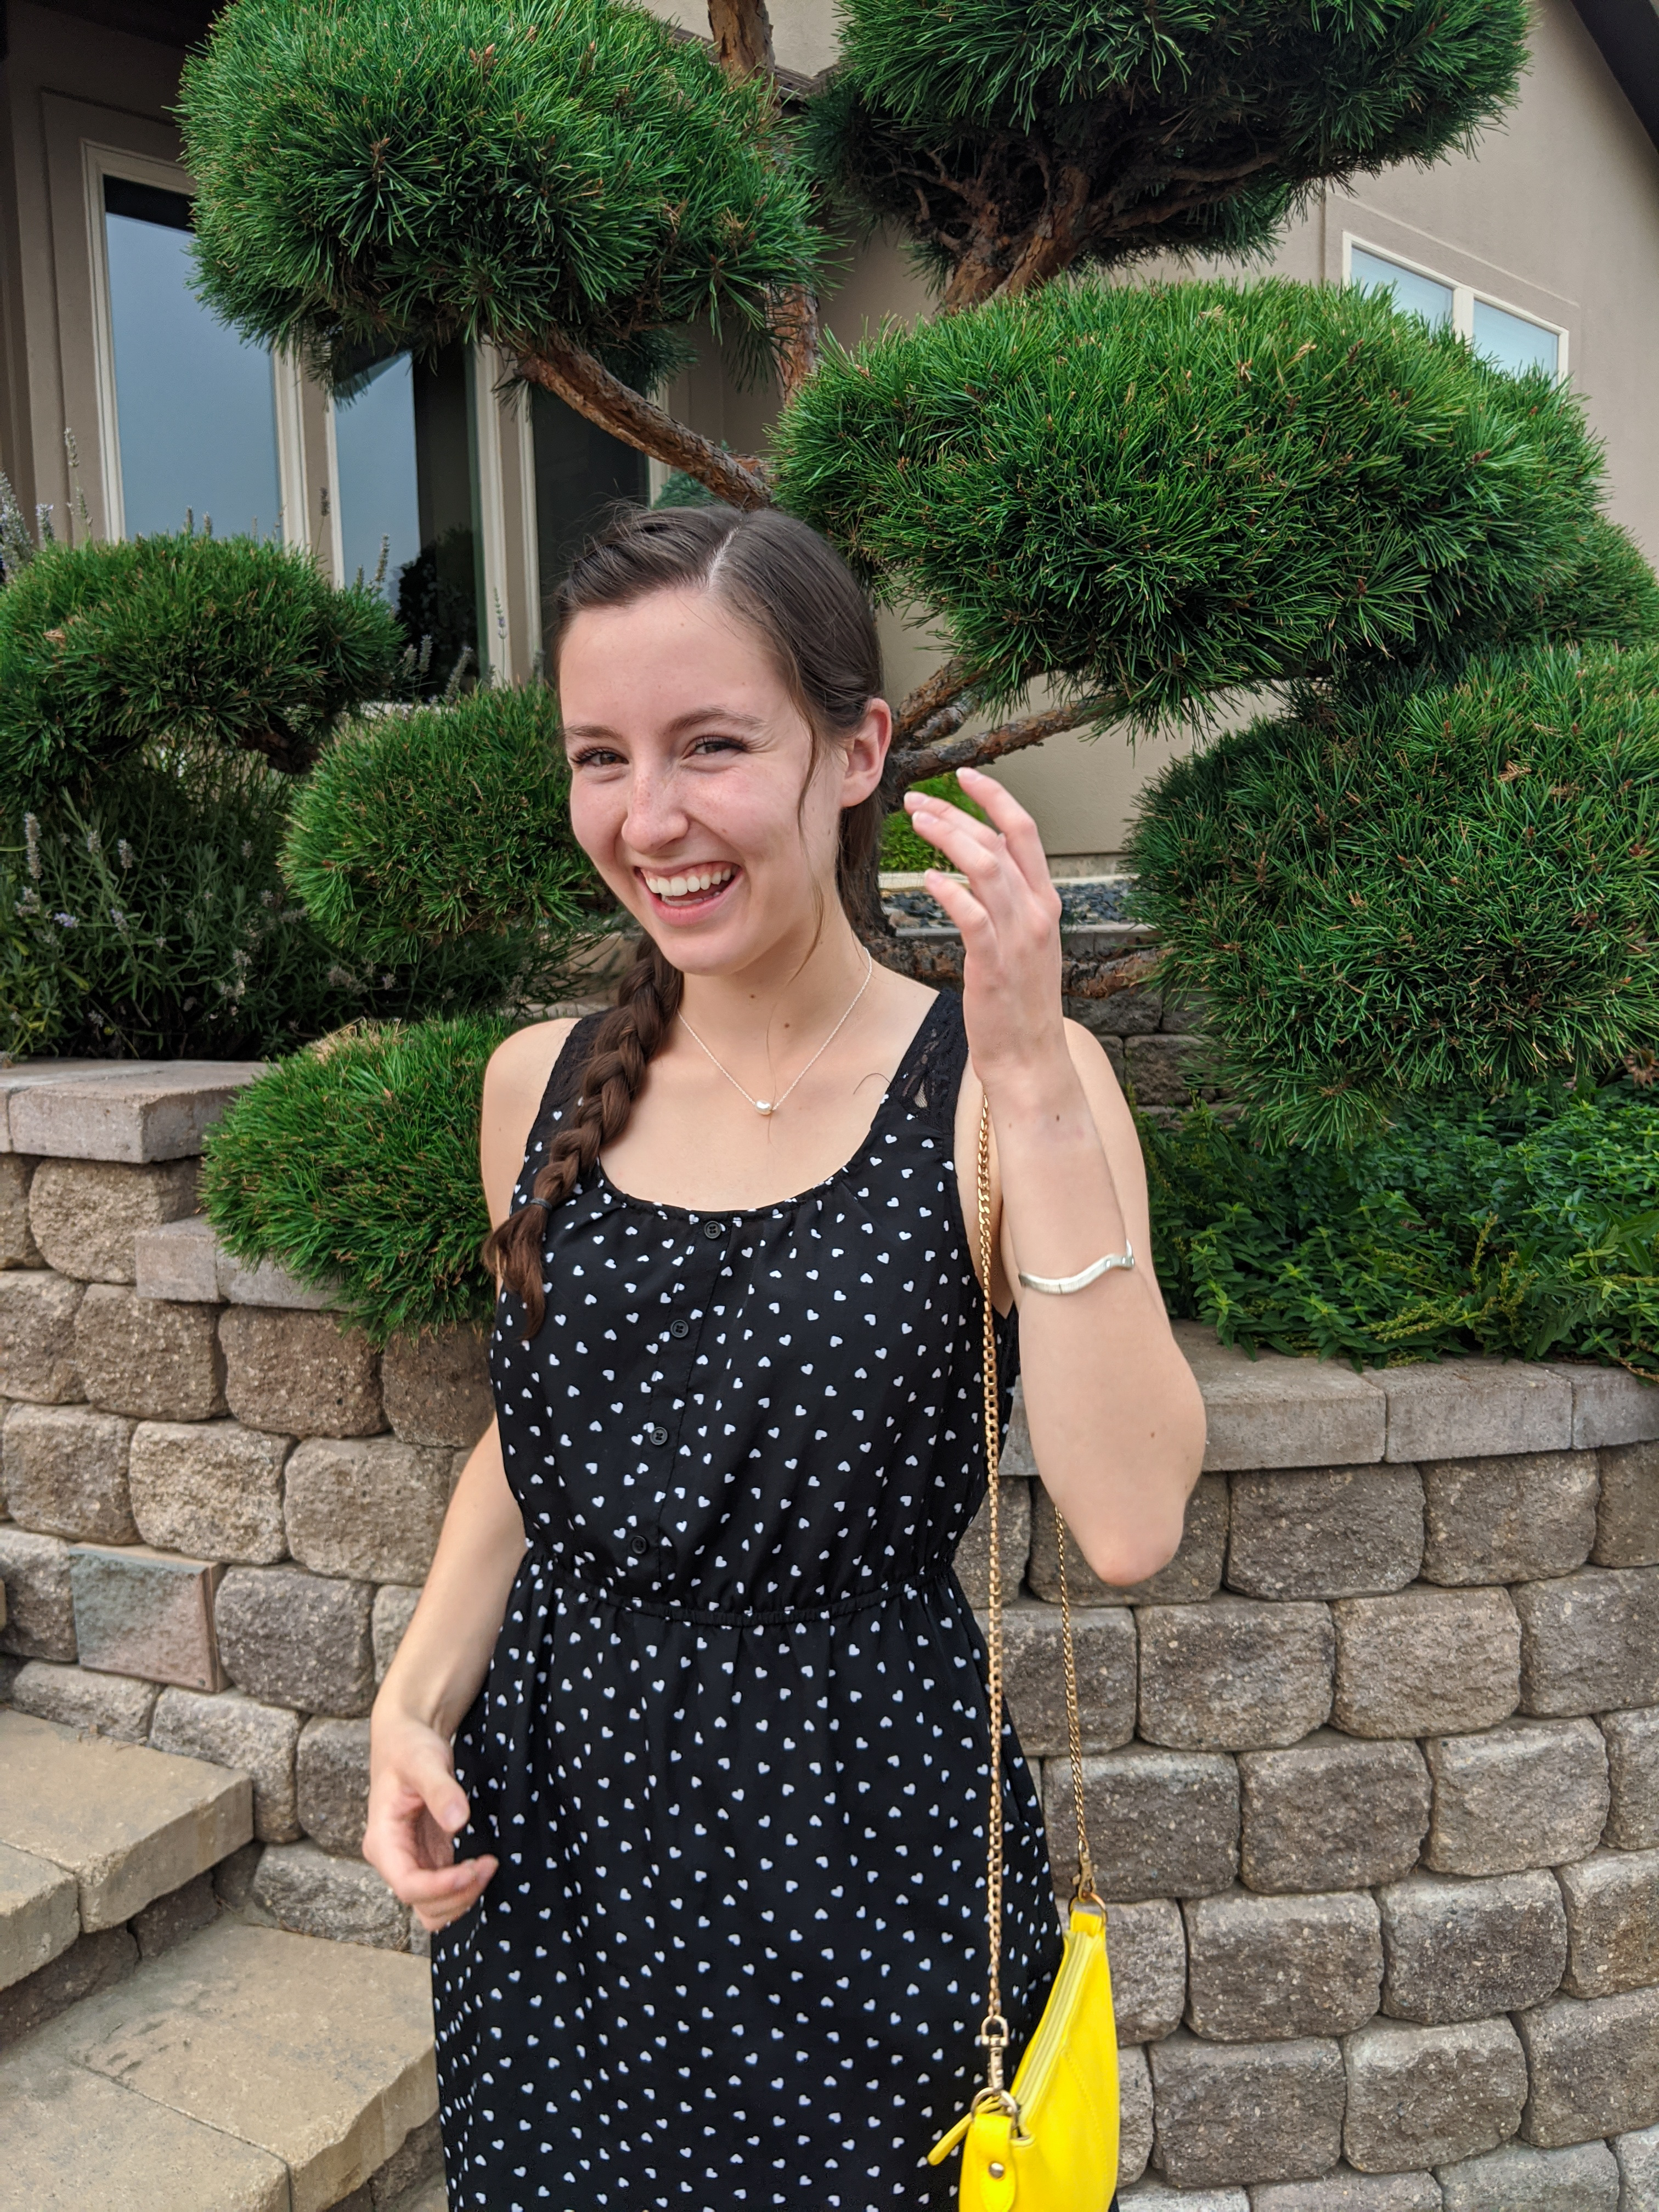 dotted-dress-yellow-purse-pearl-necklace-side-braid